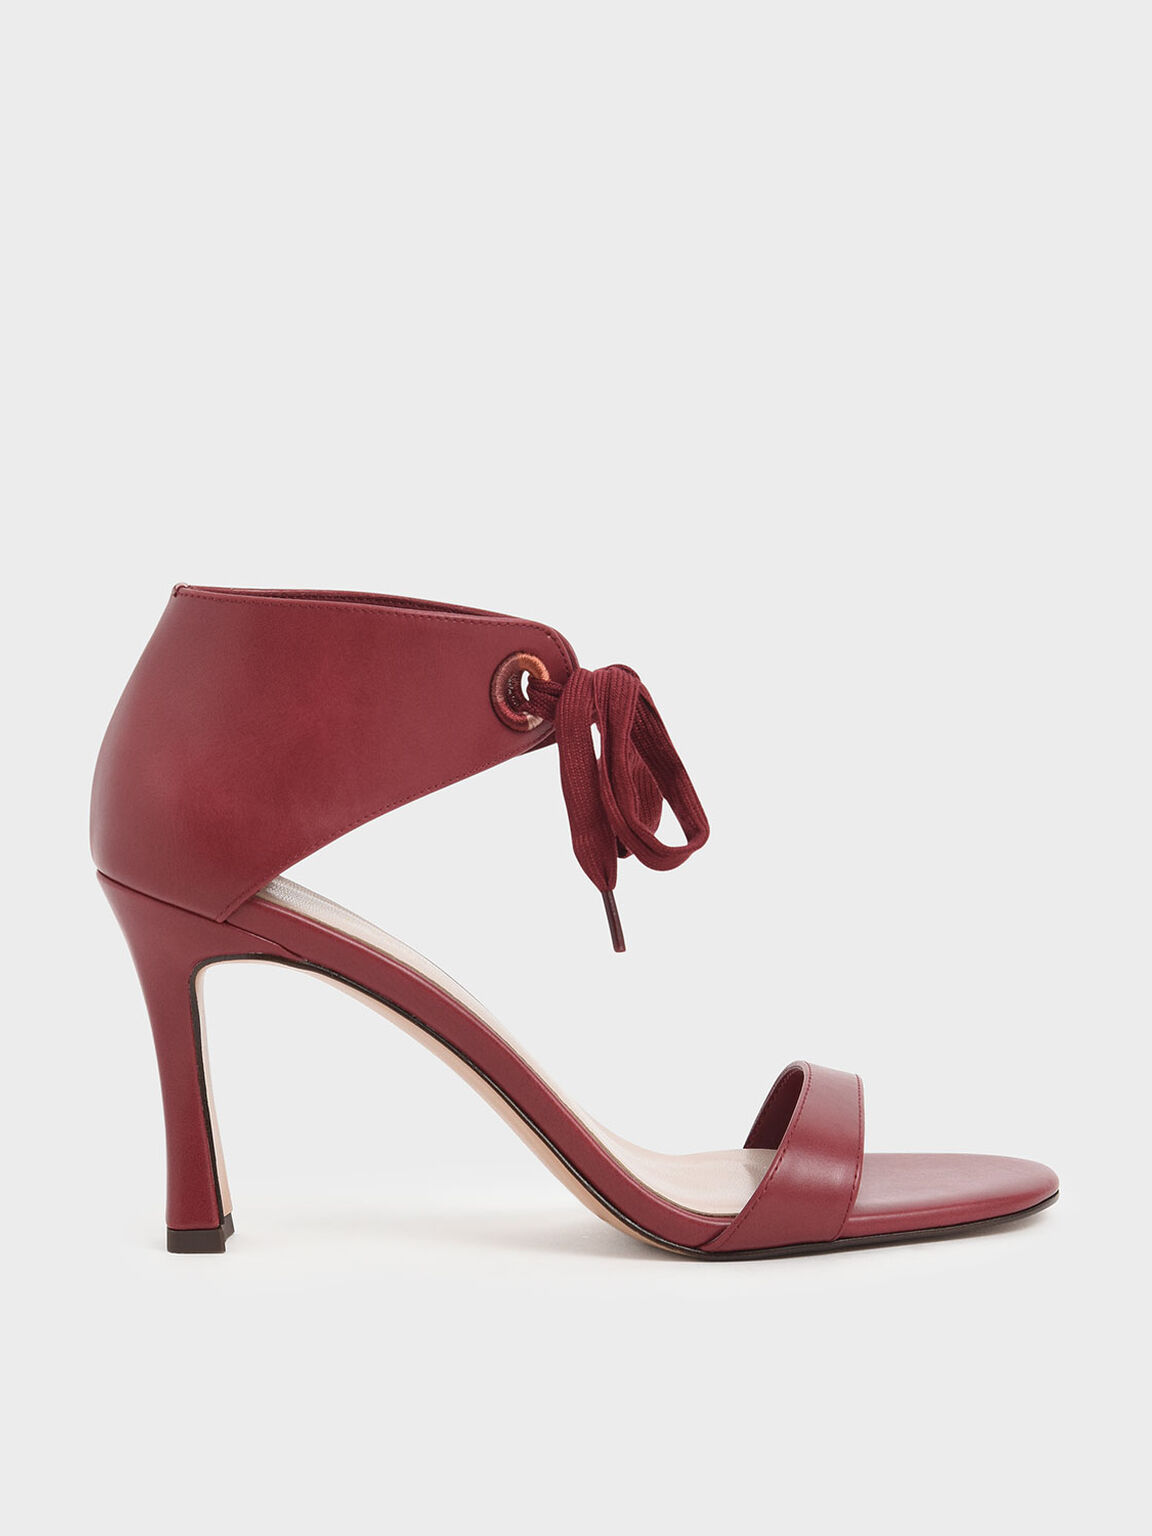 Bow Ankle Strap Sculptural Heel Sandals, Red, hi-res